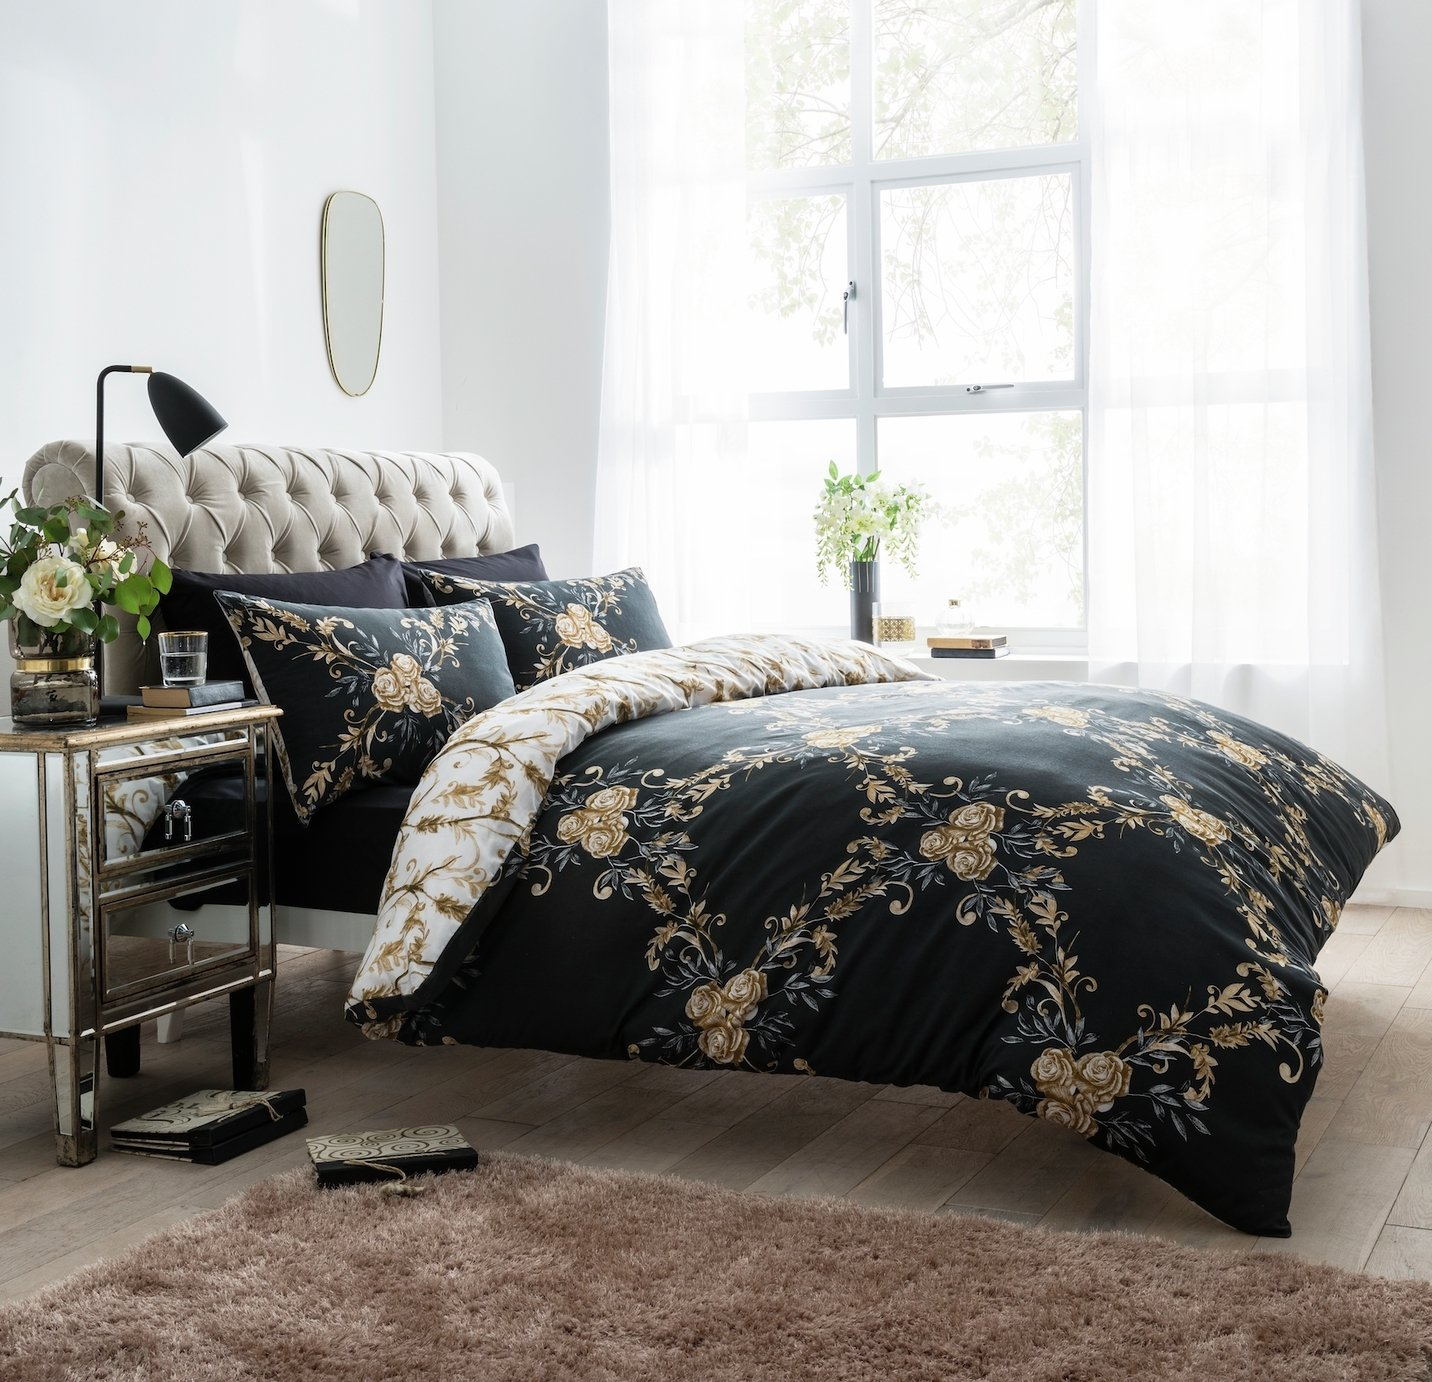 Argos Home Black Floral Damask Bedding Set - Single